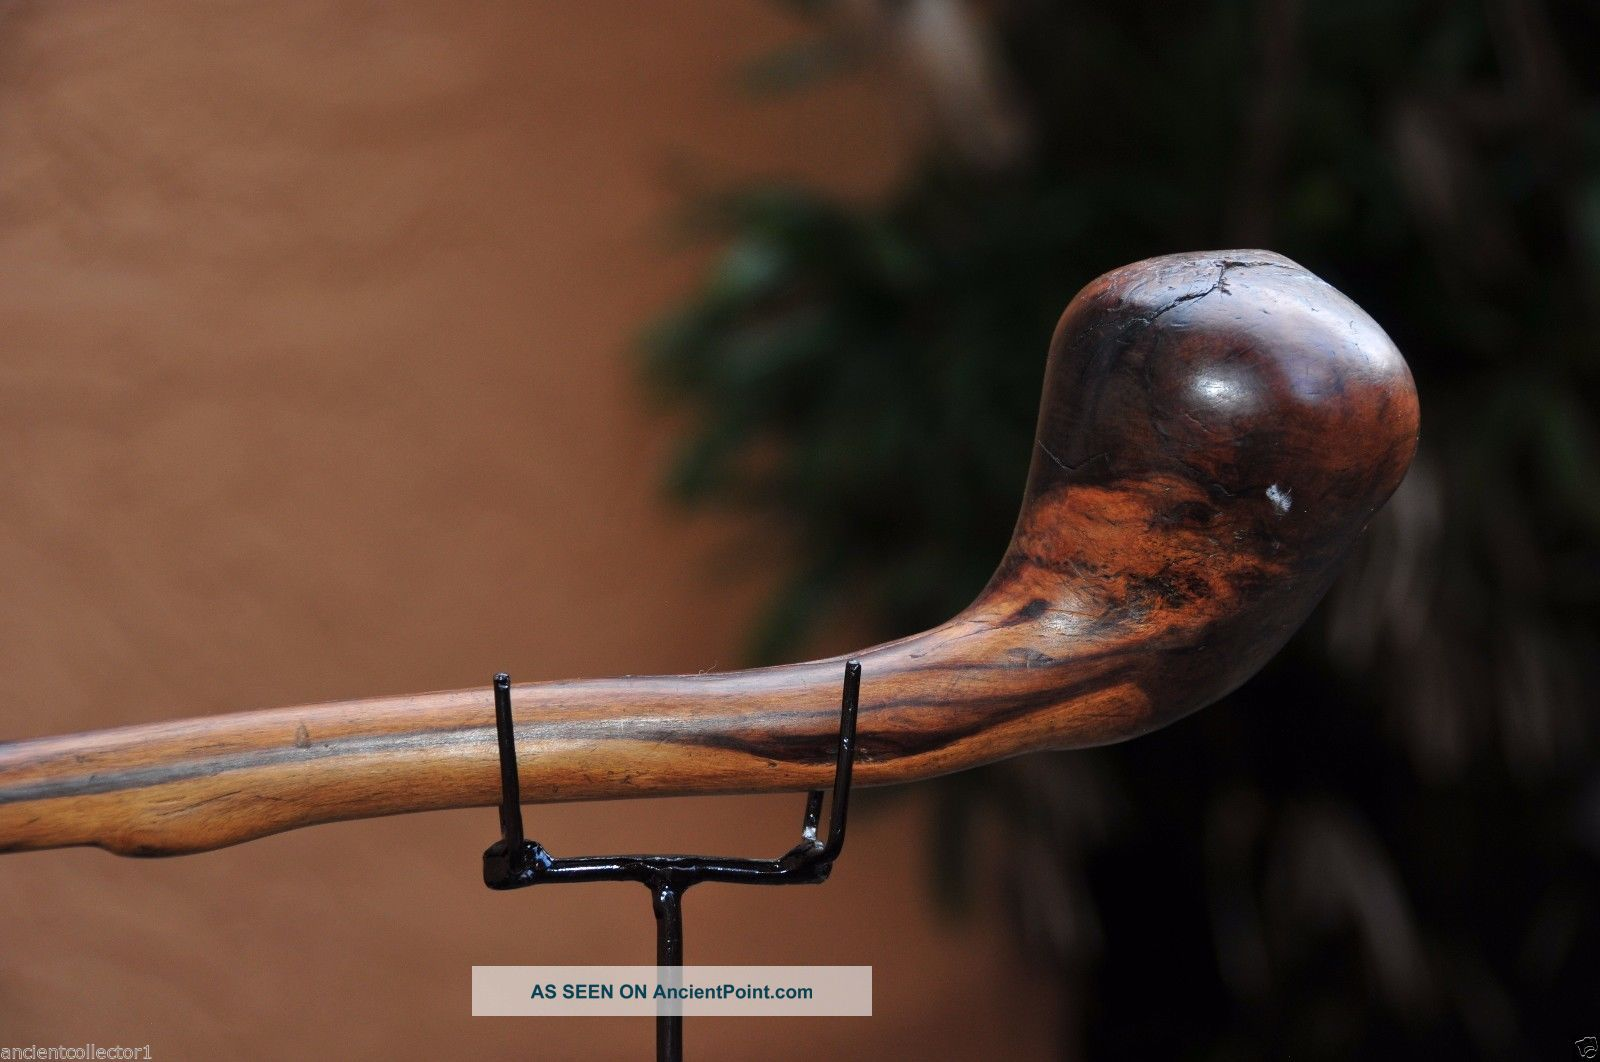 Museum Quality Antique 19th - 20th Century African Knobkerrie War Club 4 Sculptures & Statues photo